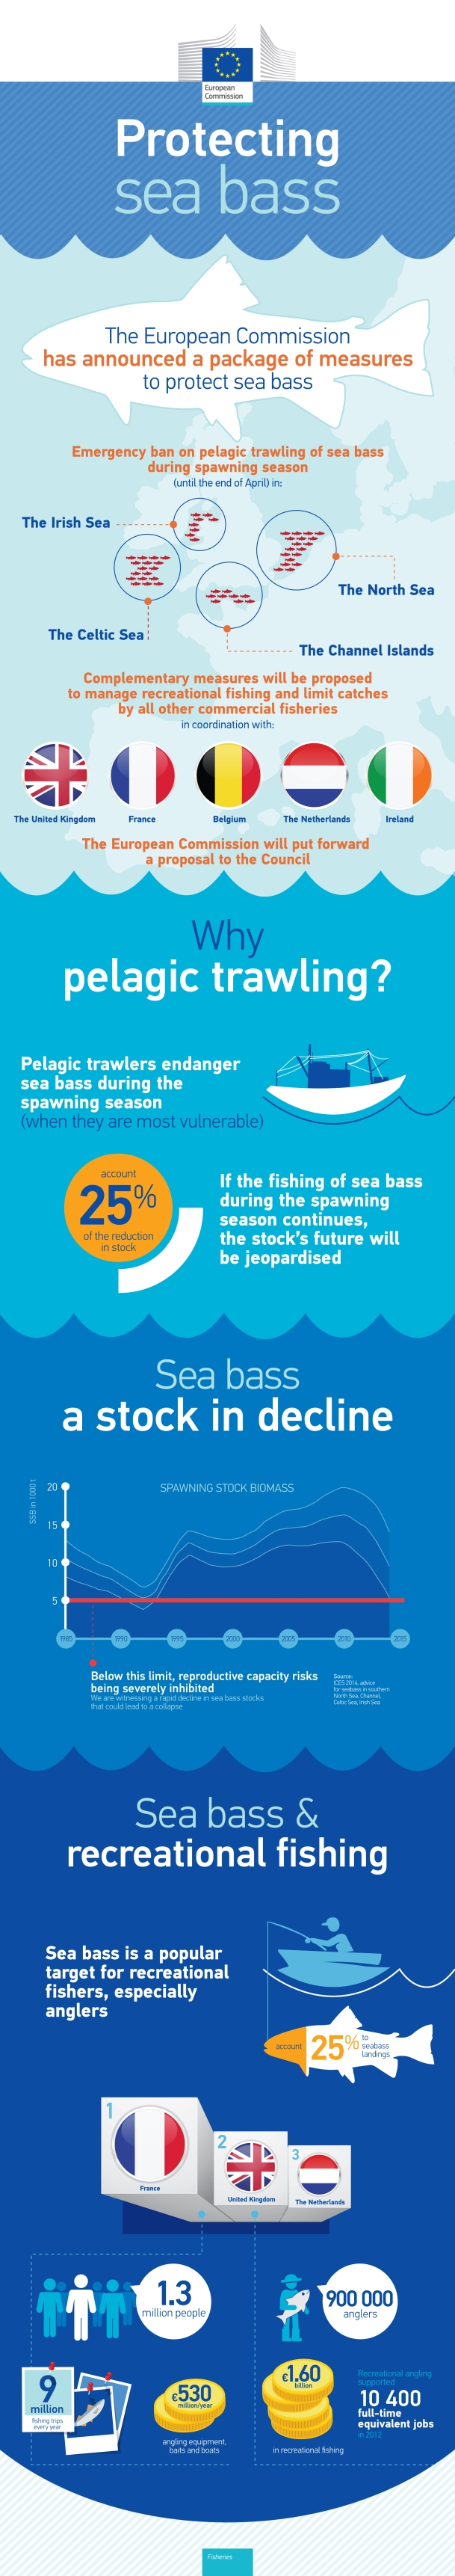 Infograph detailing the current situation regarding sea bass fishing - European Commission.